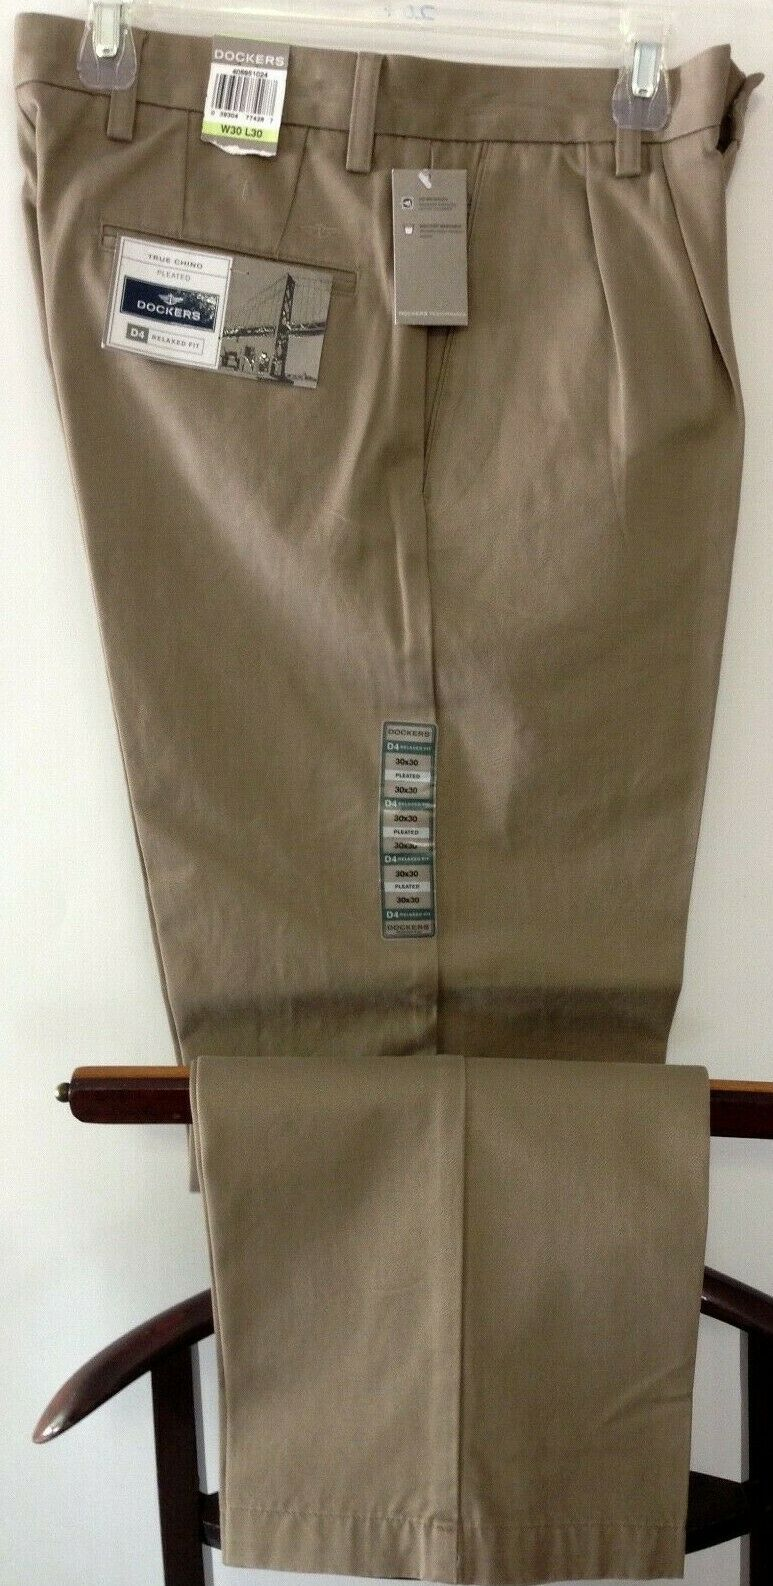 NEW DOCKERS Men's True Chino Casual Pants Relaxed Fit Plea